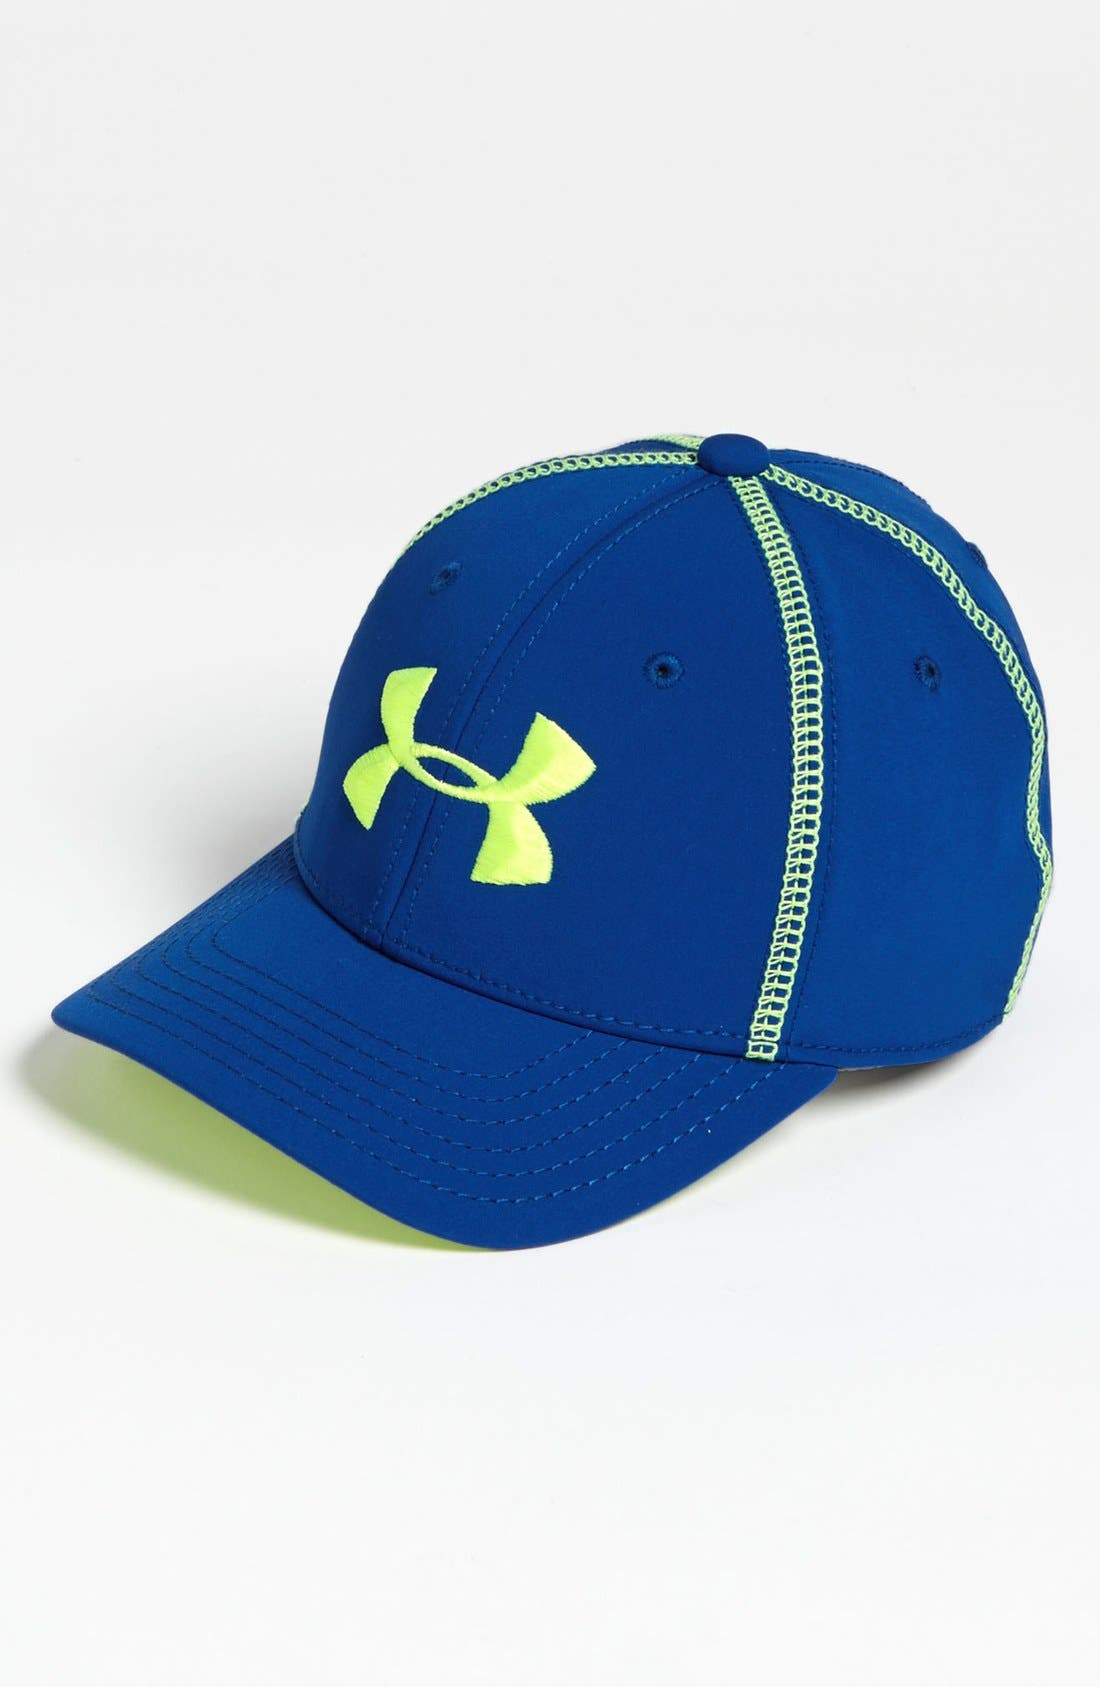 Alternate Image 1 Selected - Under Armour 'Catalyst' Hat (Boys)